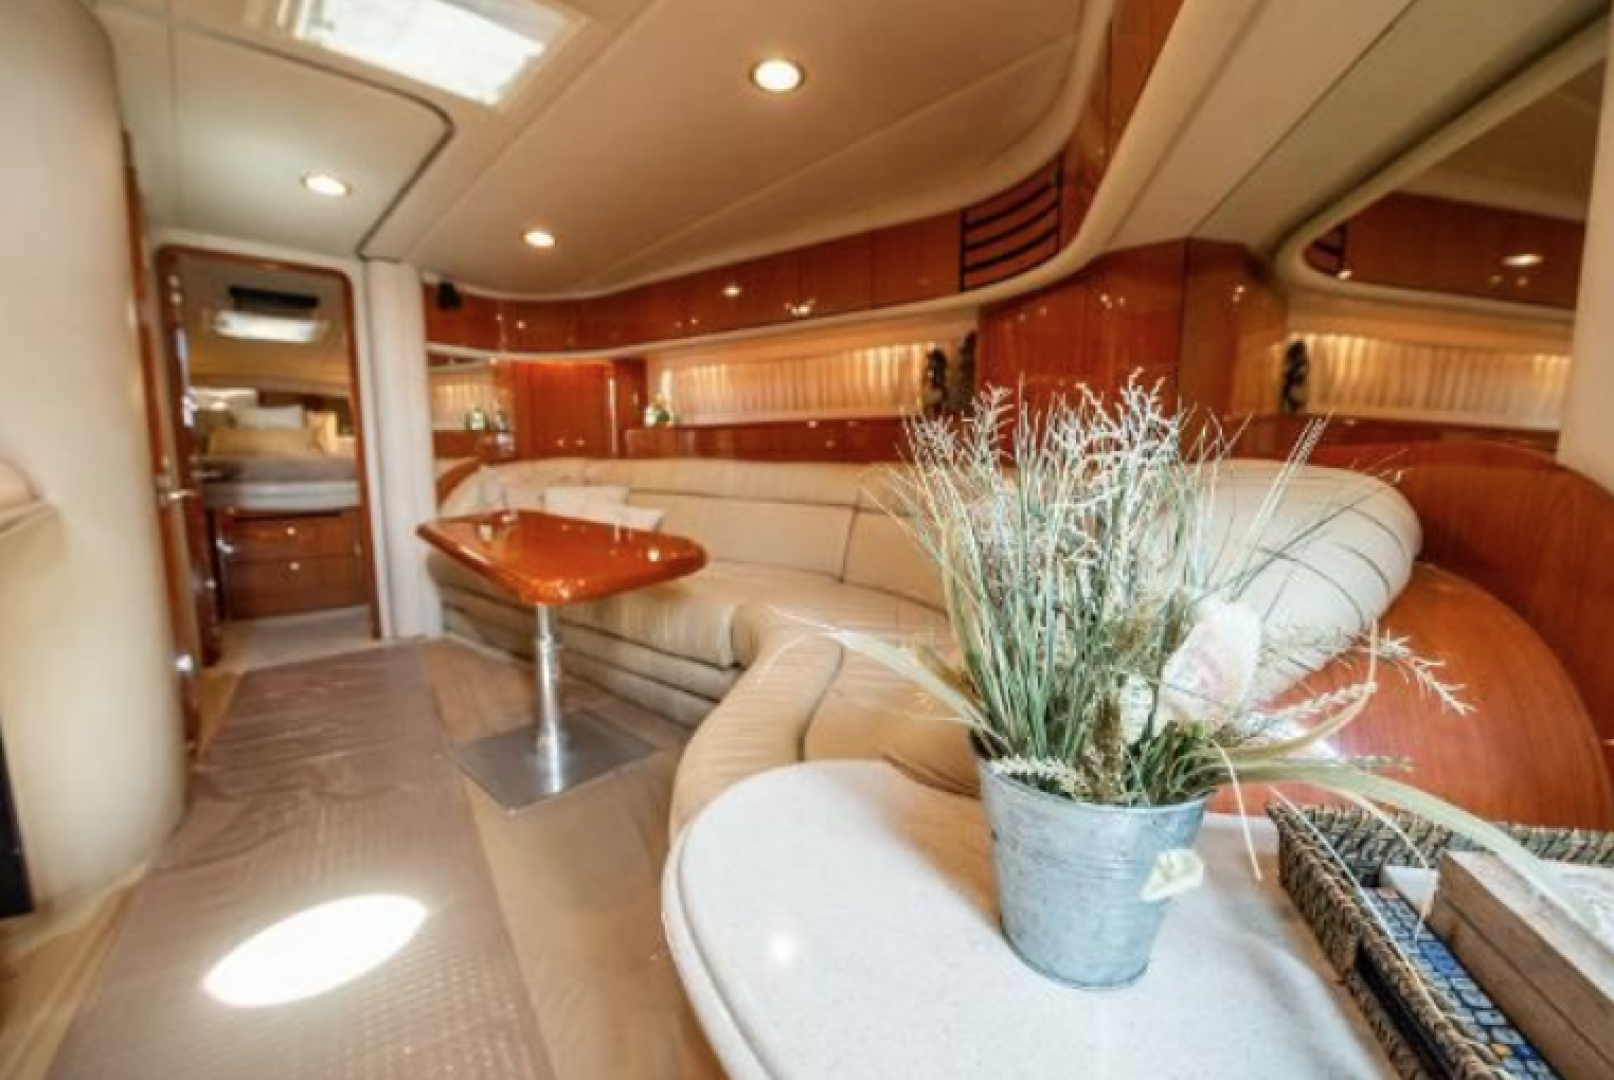 Sea Ray-540 Sundancer 2000-Bettsy Miami-Florida-United States-1562155 | Thumbnail